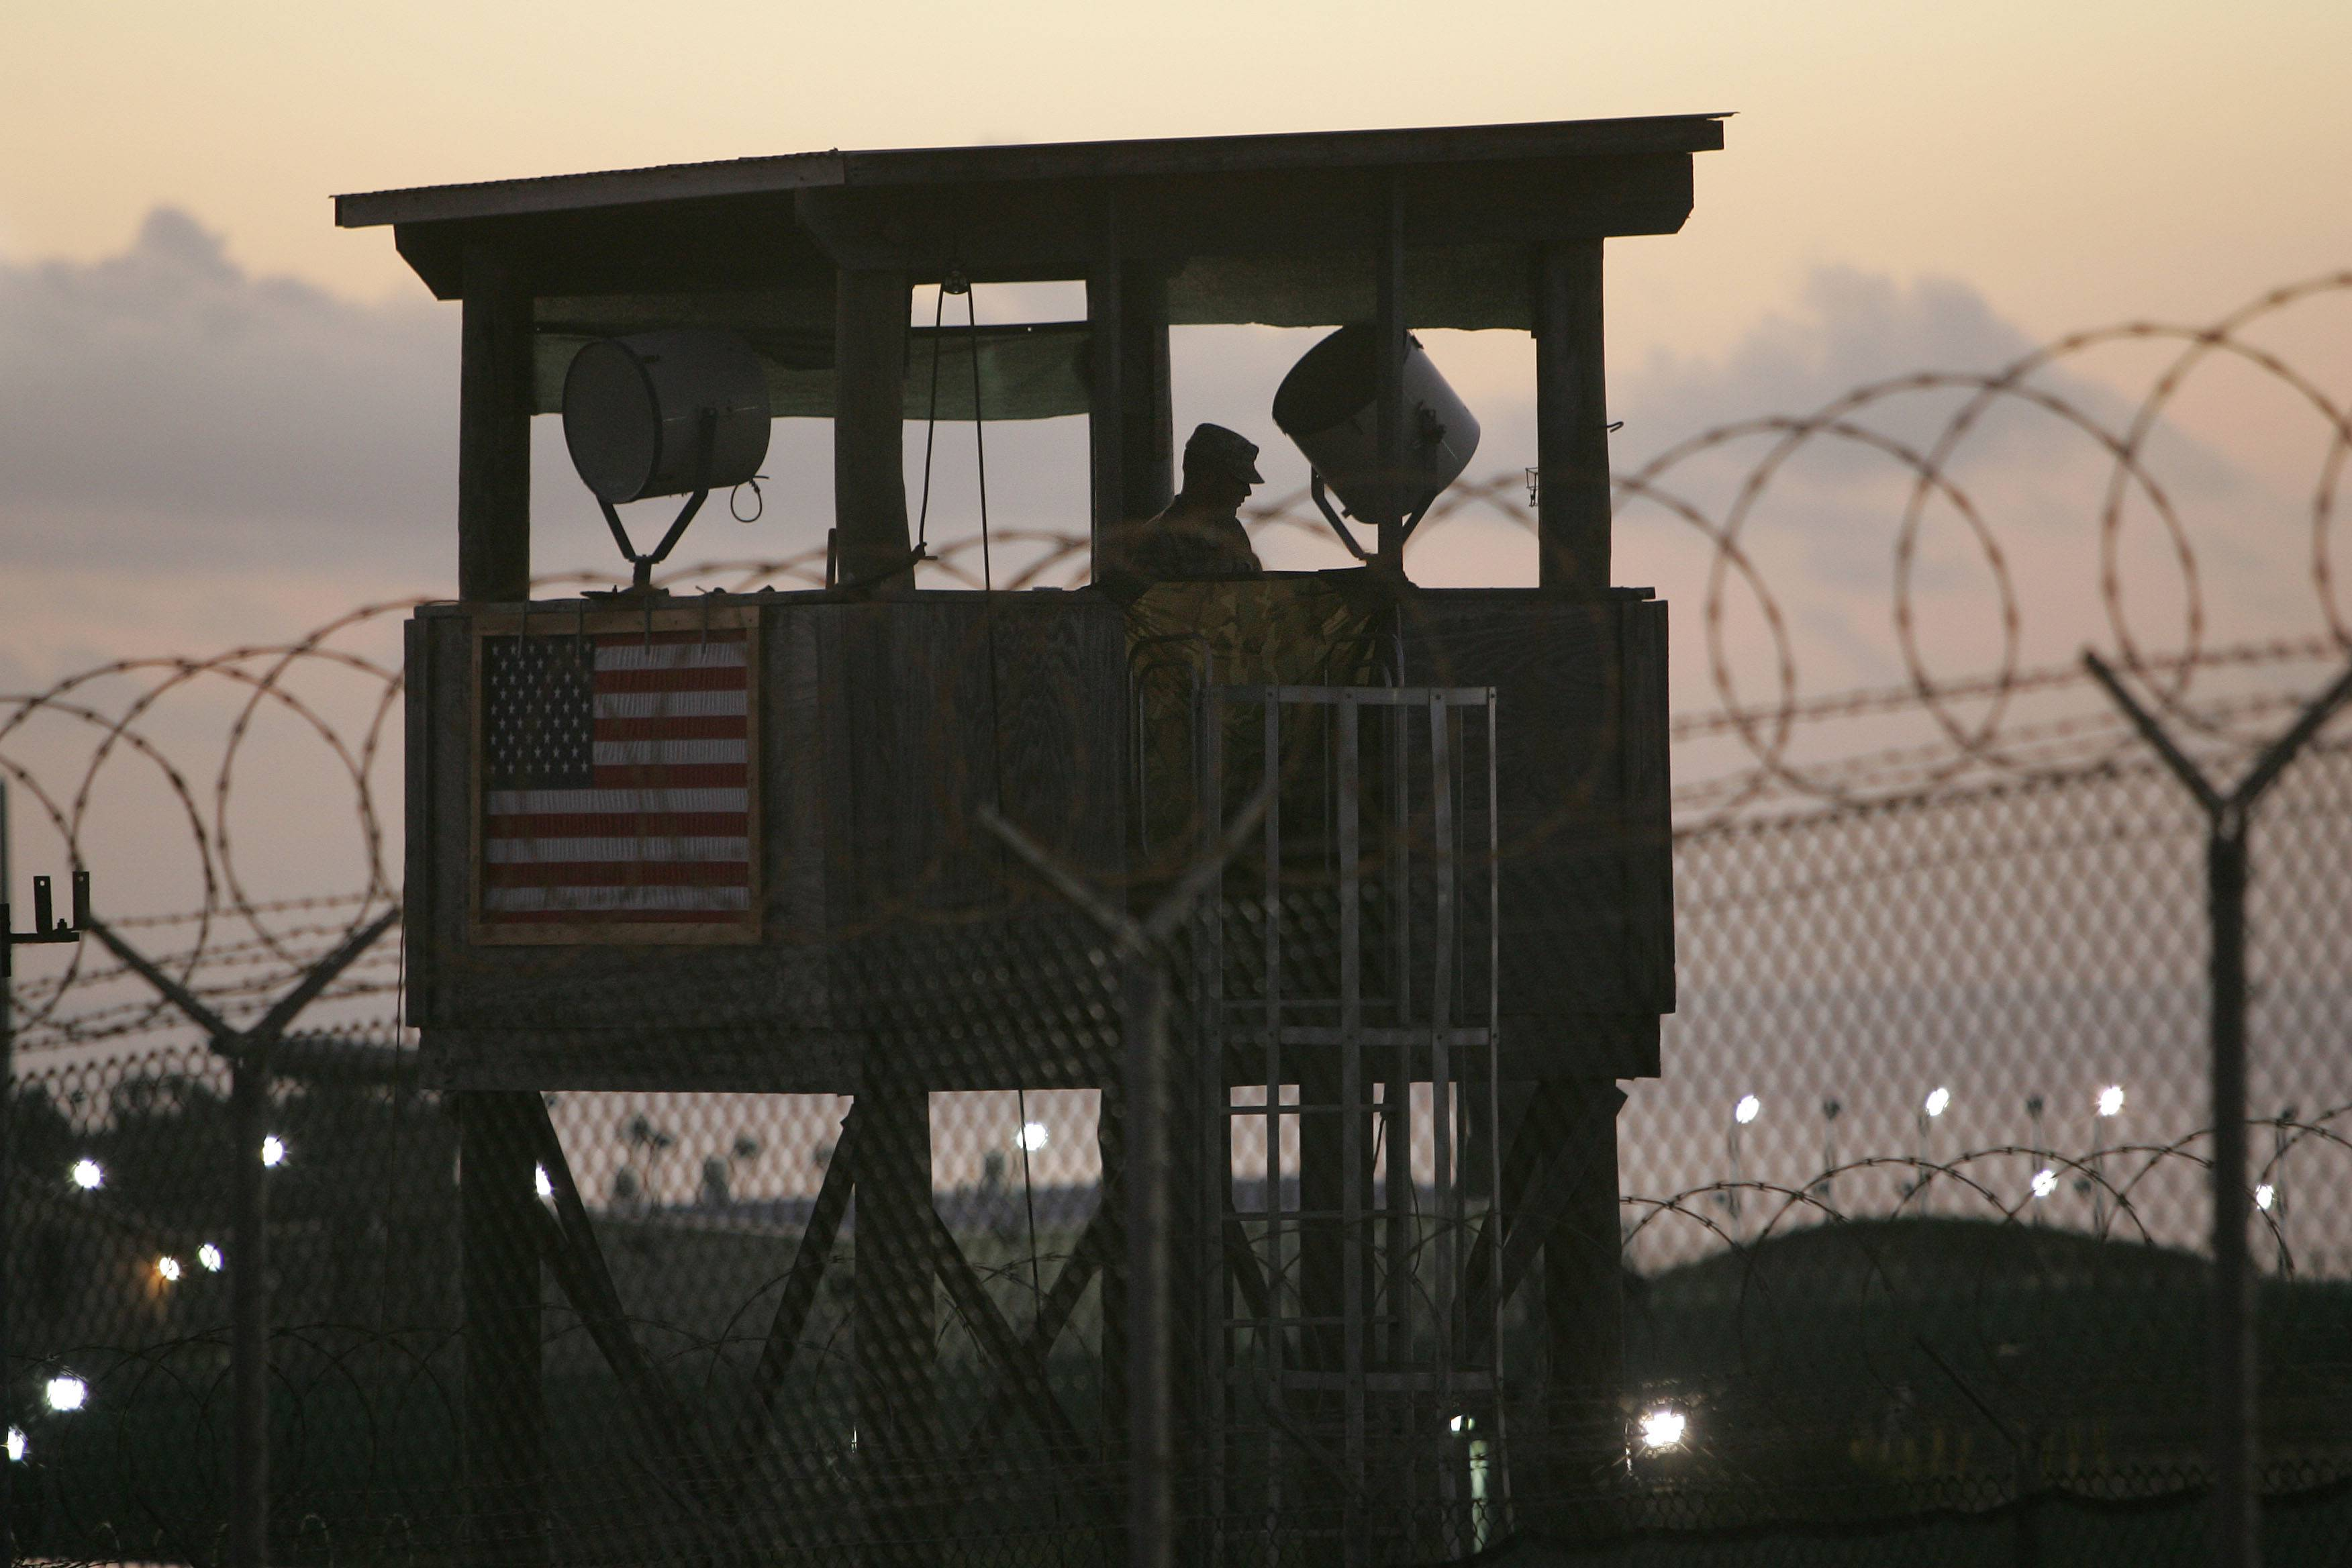 A U.S. soldier keeps watch from a guard tower overlooking Camp Delta detention center on Guantanamo Bay U.S. Naval Base in Cuba. The defense bill bars 85 percent of the funds in the account for overseas conflicts until Defense Secretary Chuck Hagel reassures lawmakers that congressional notification on Guantanamo transfers will be respected.